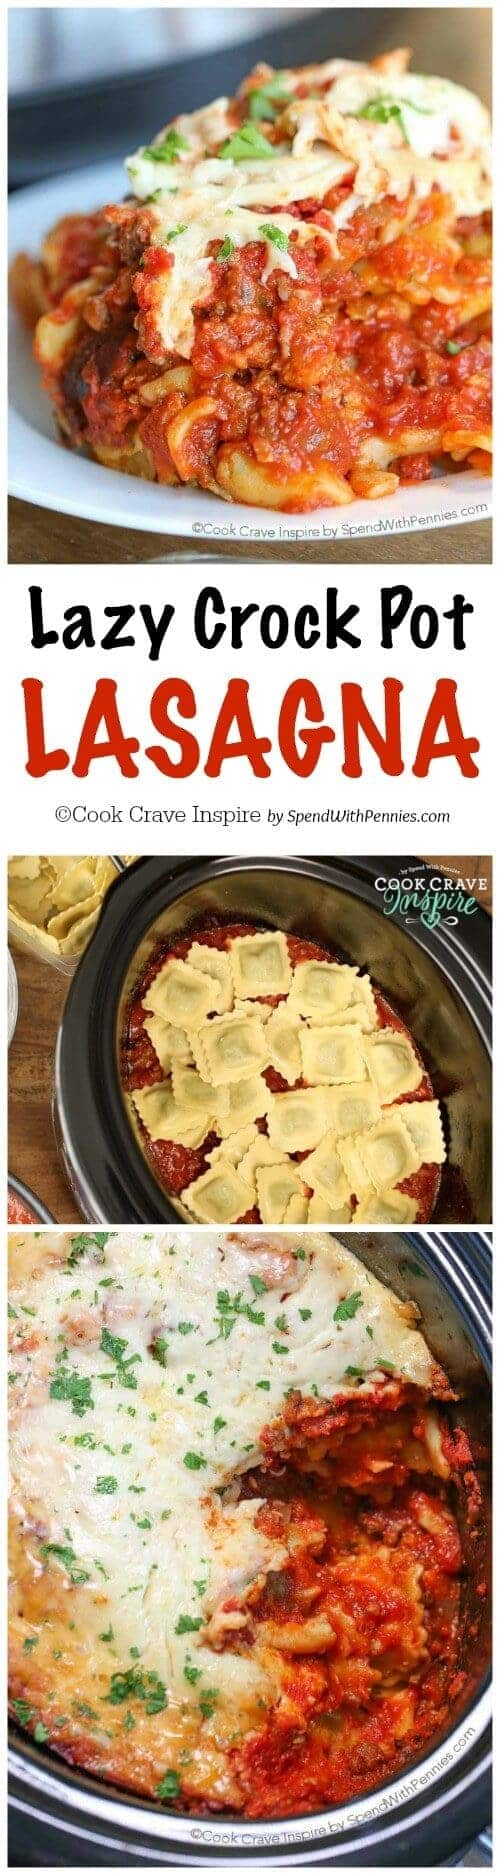 Lazy Crock Pot Lasagna on a plate and in the slow cooker with a title